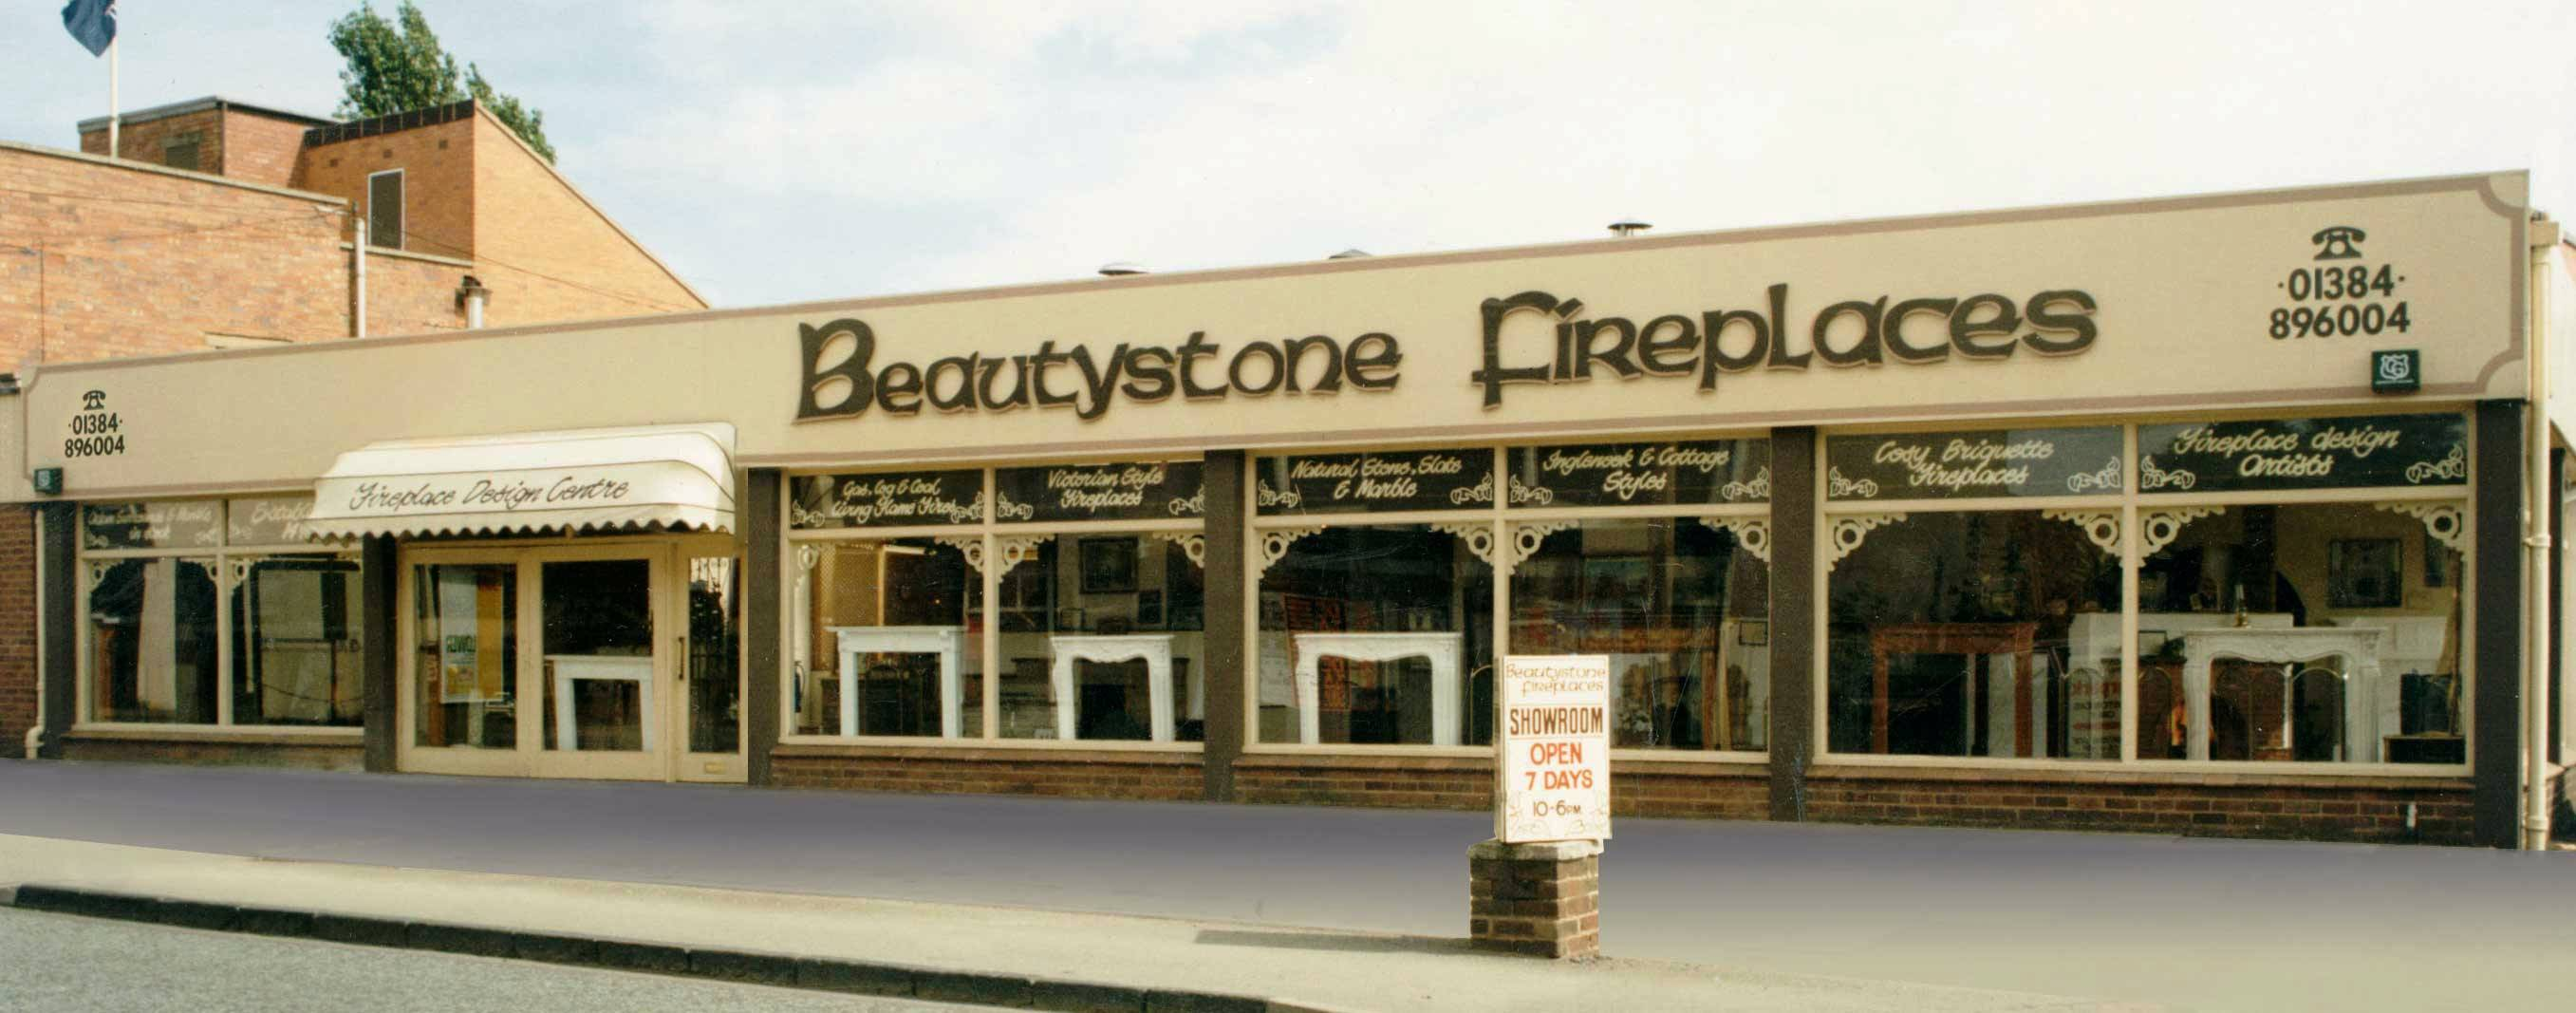 Beautystone Fireplaces, Stourbridge